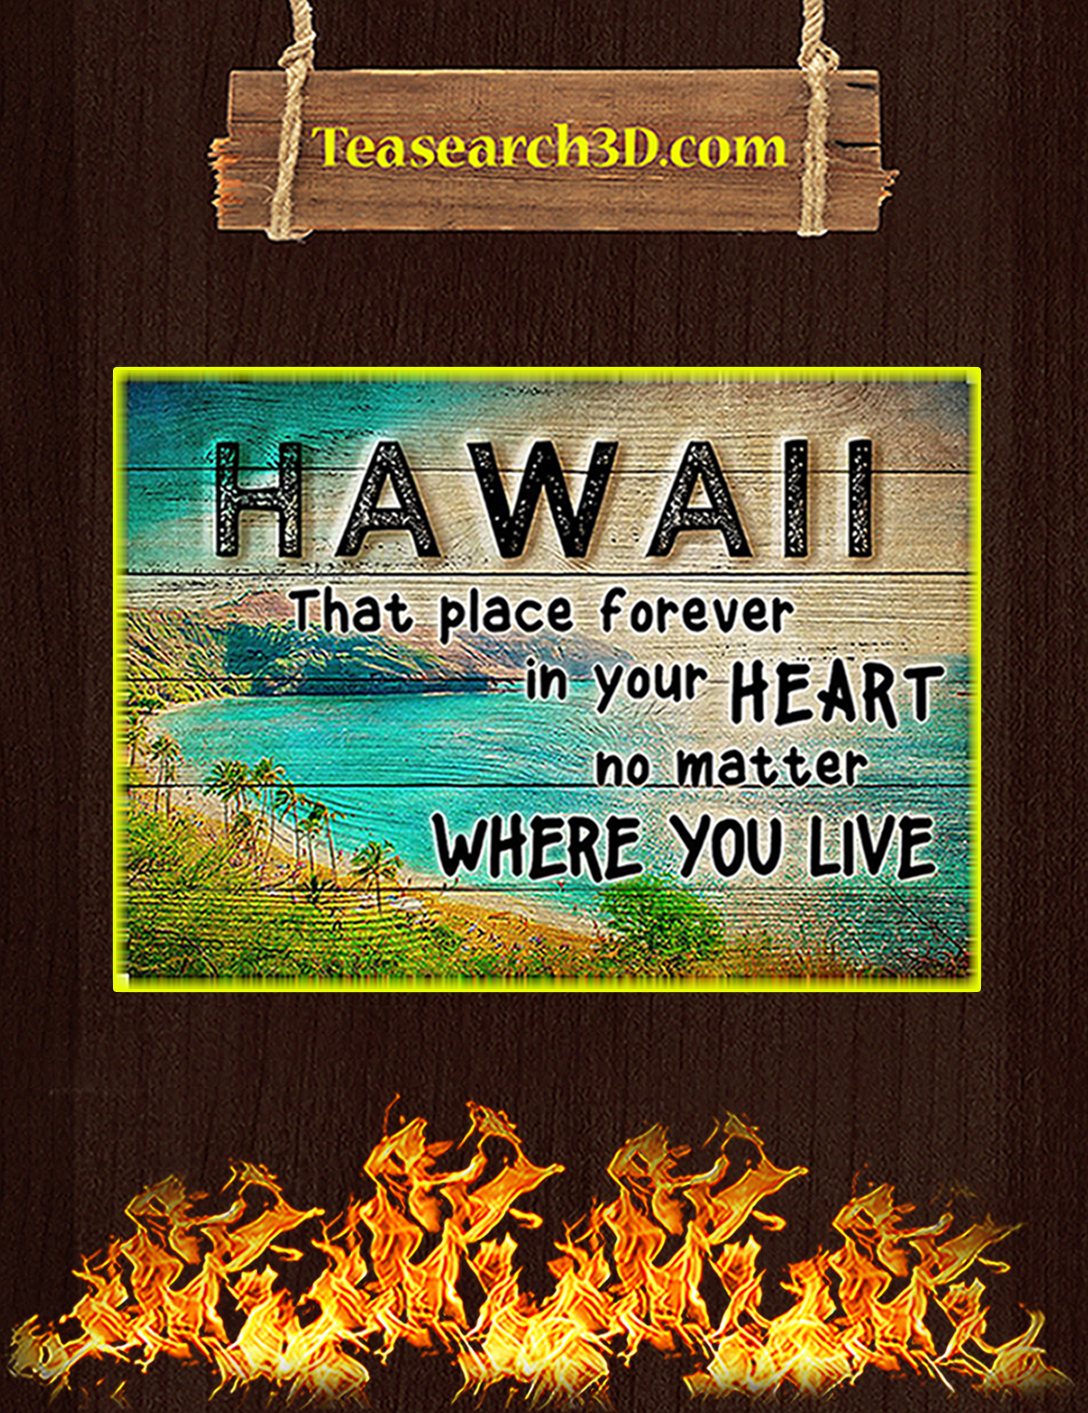 Hawaii that place forever in your heart poster A2